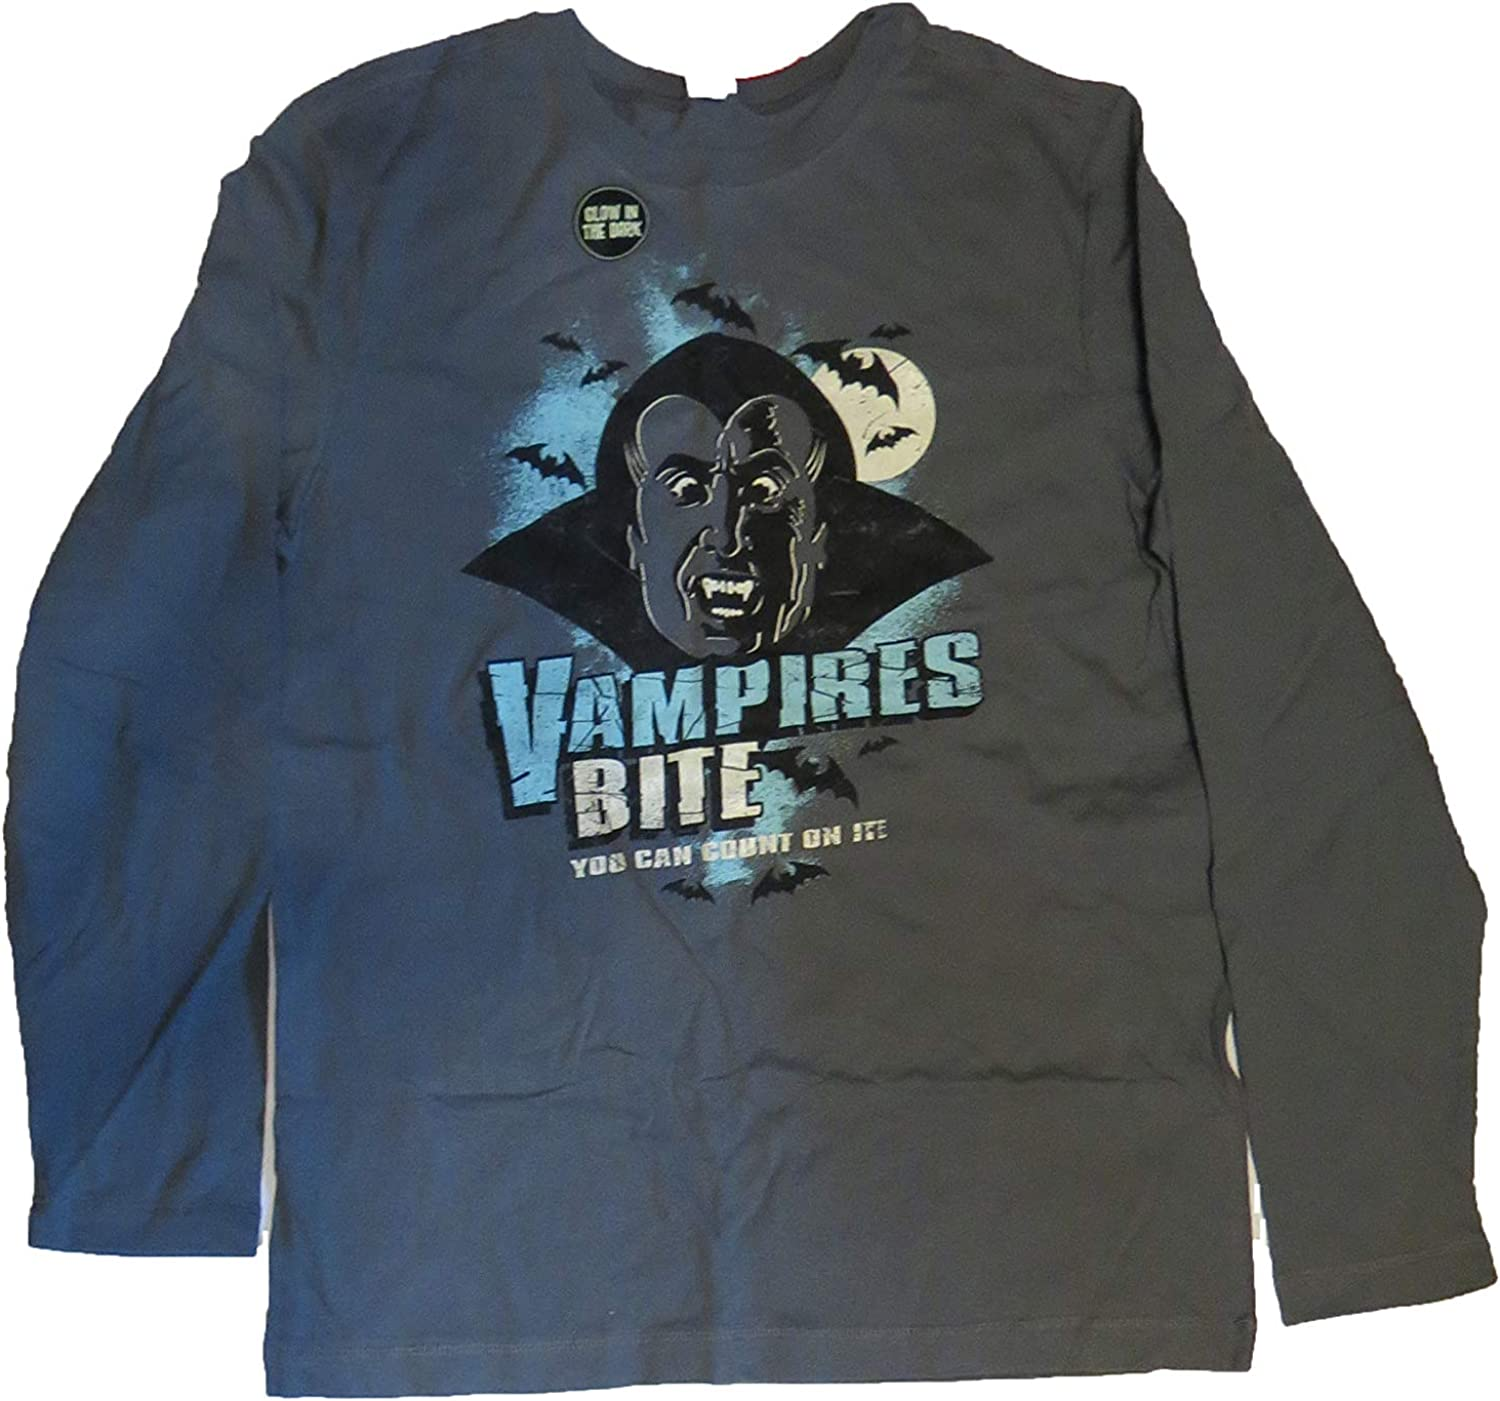 Halloween Vampires Bite You can Count on it Boys Tshirt Long Sleeve XL 16/18 Gray